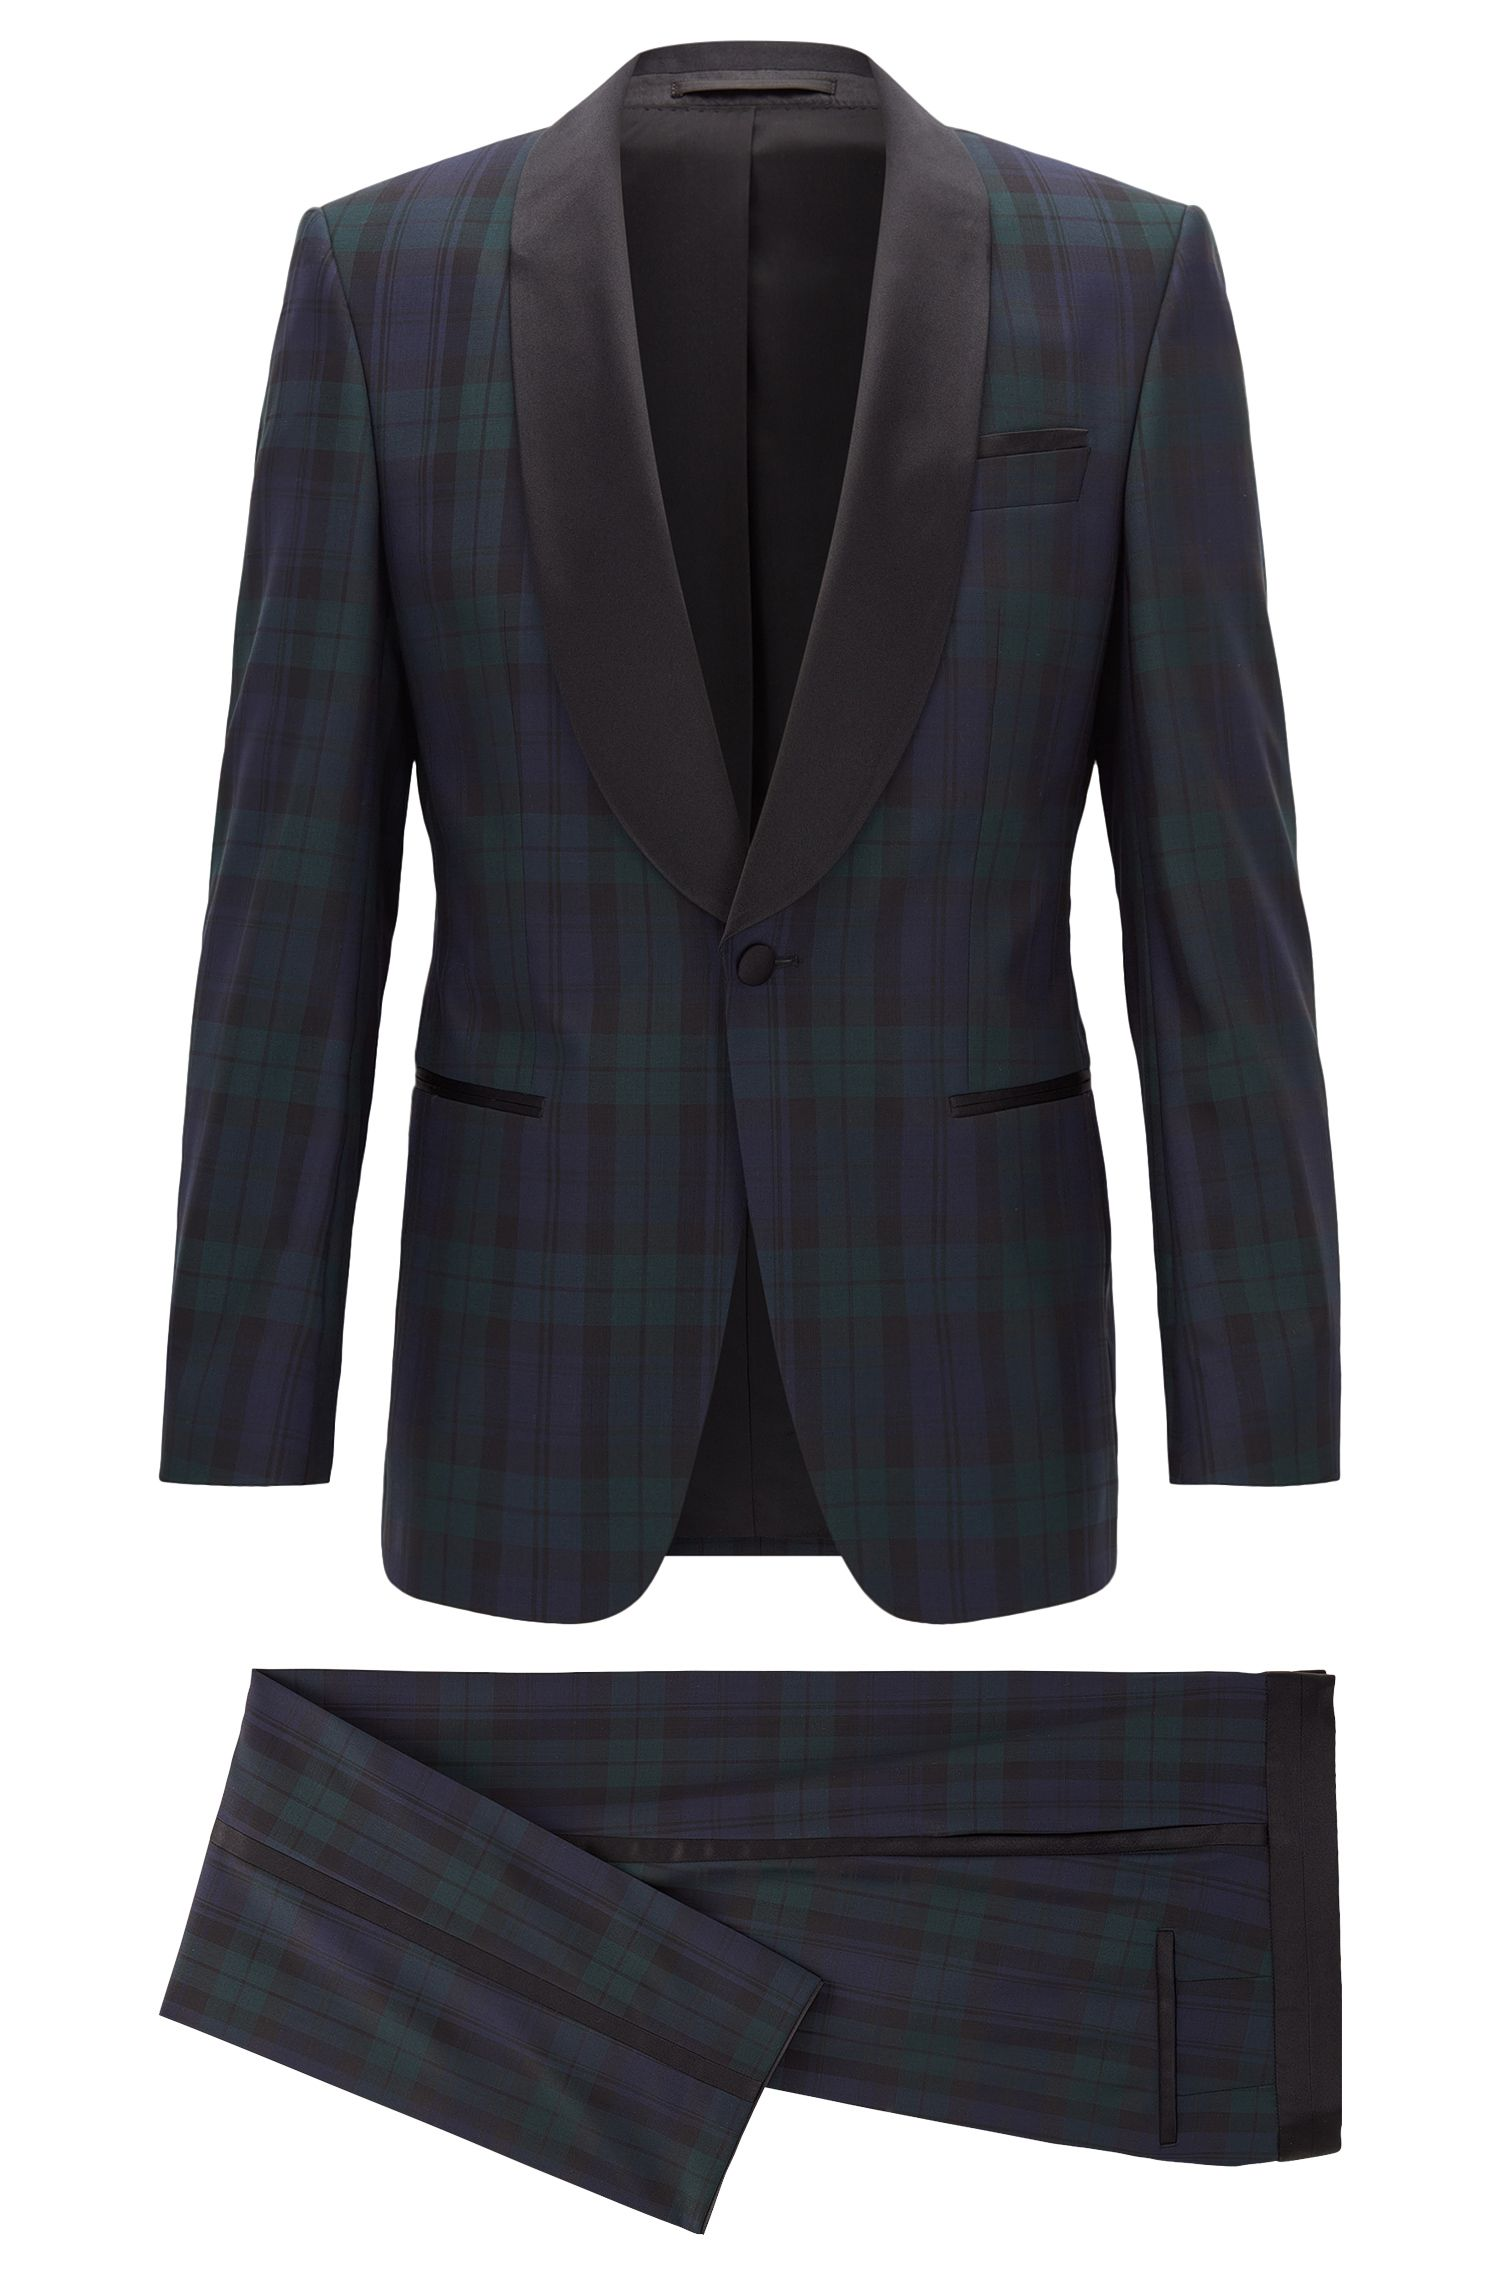 Black Watch Virgin Wool Tuxedo, Slim Fit | Herwyn/Gewon | Herwyn/Gewon